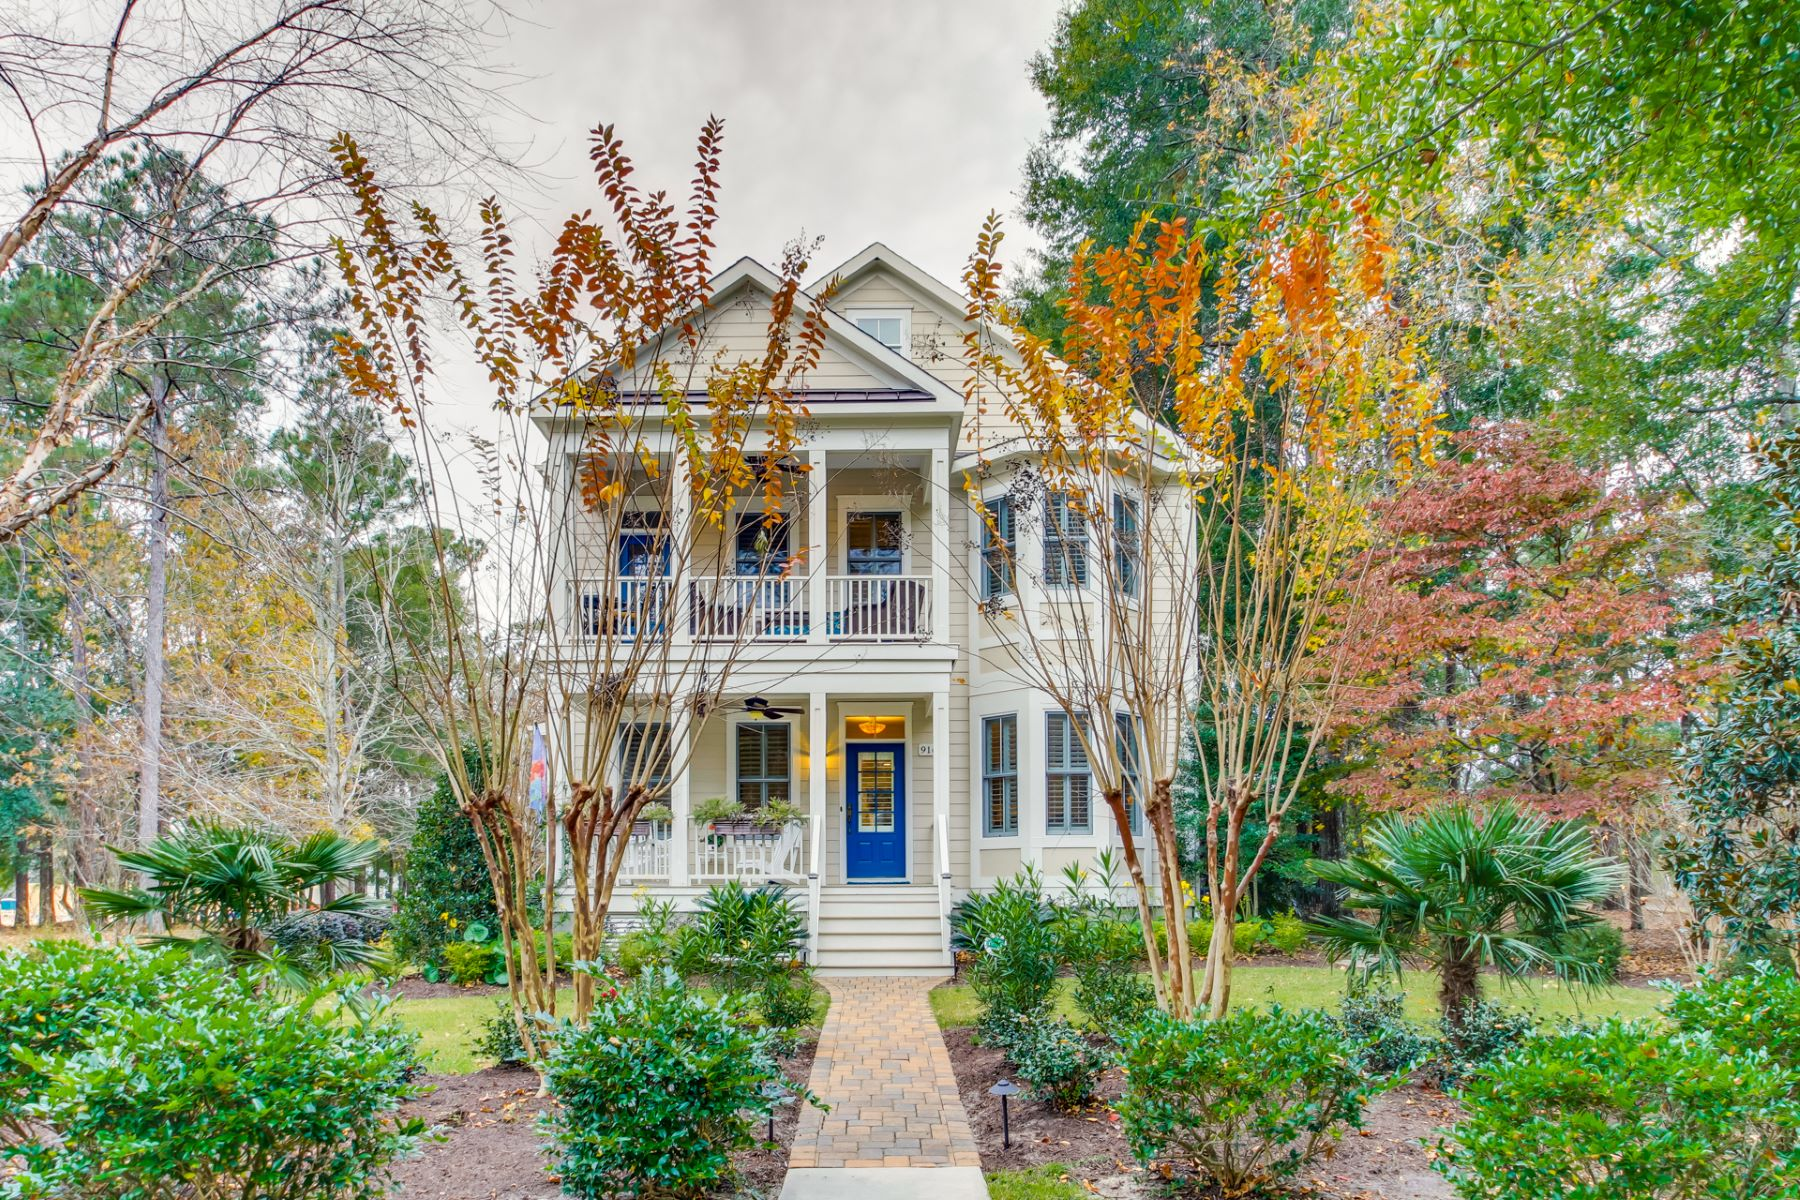 Single Family Homes for Sale at Charleston Style Home With Stunning Views 9163 Devaun Park Blvd Calabash, North Carolina 28467 United States